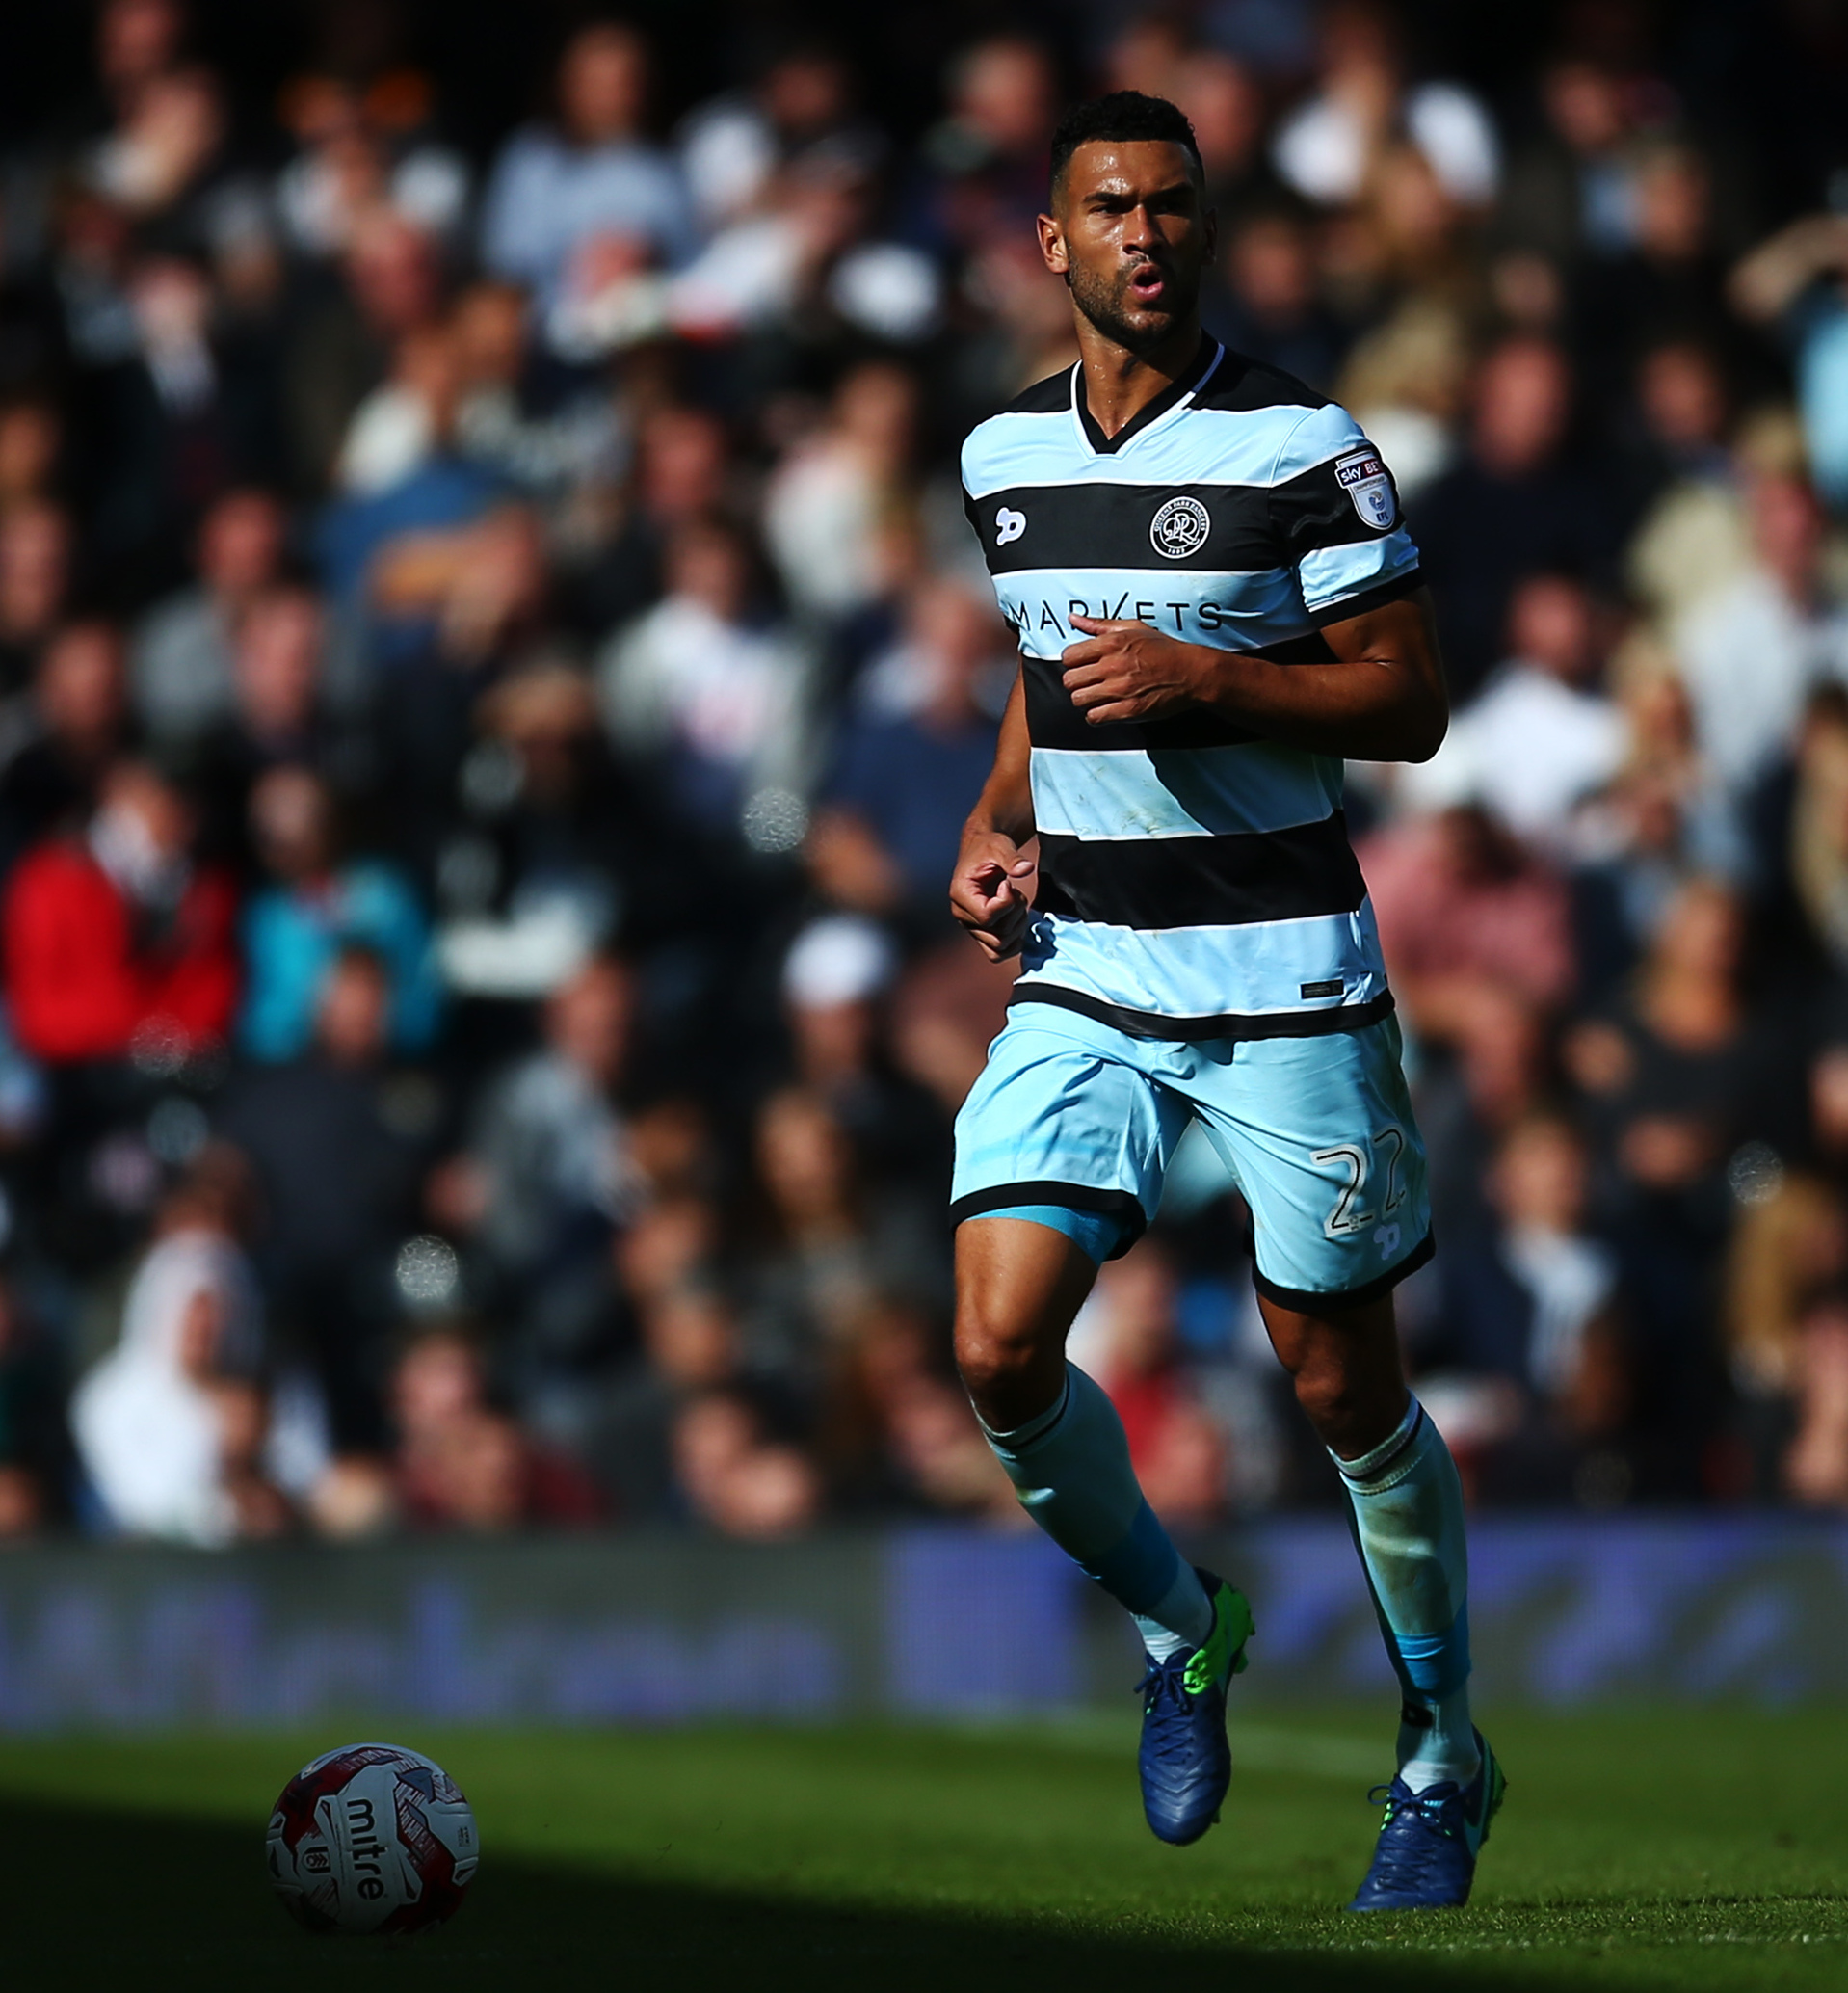 LONDON, ENGLAND - OCTOBER 01:  Steven Caulker of QPR in action during the Sky Bet Championship match between Fulham and Queens Park Rangers at Craven Cottage on October 1, 2016 in London, England.  (Photo by Jordan Mansfield/Getty Images).